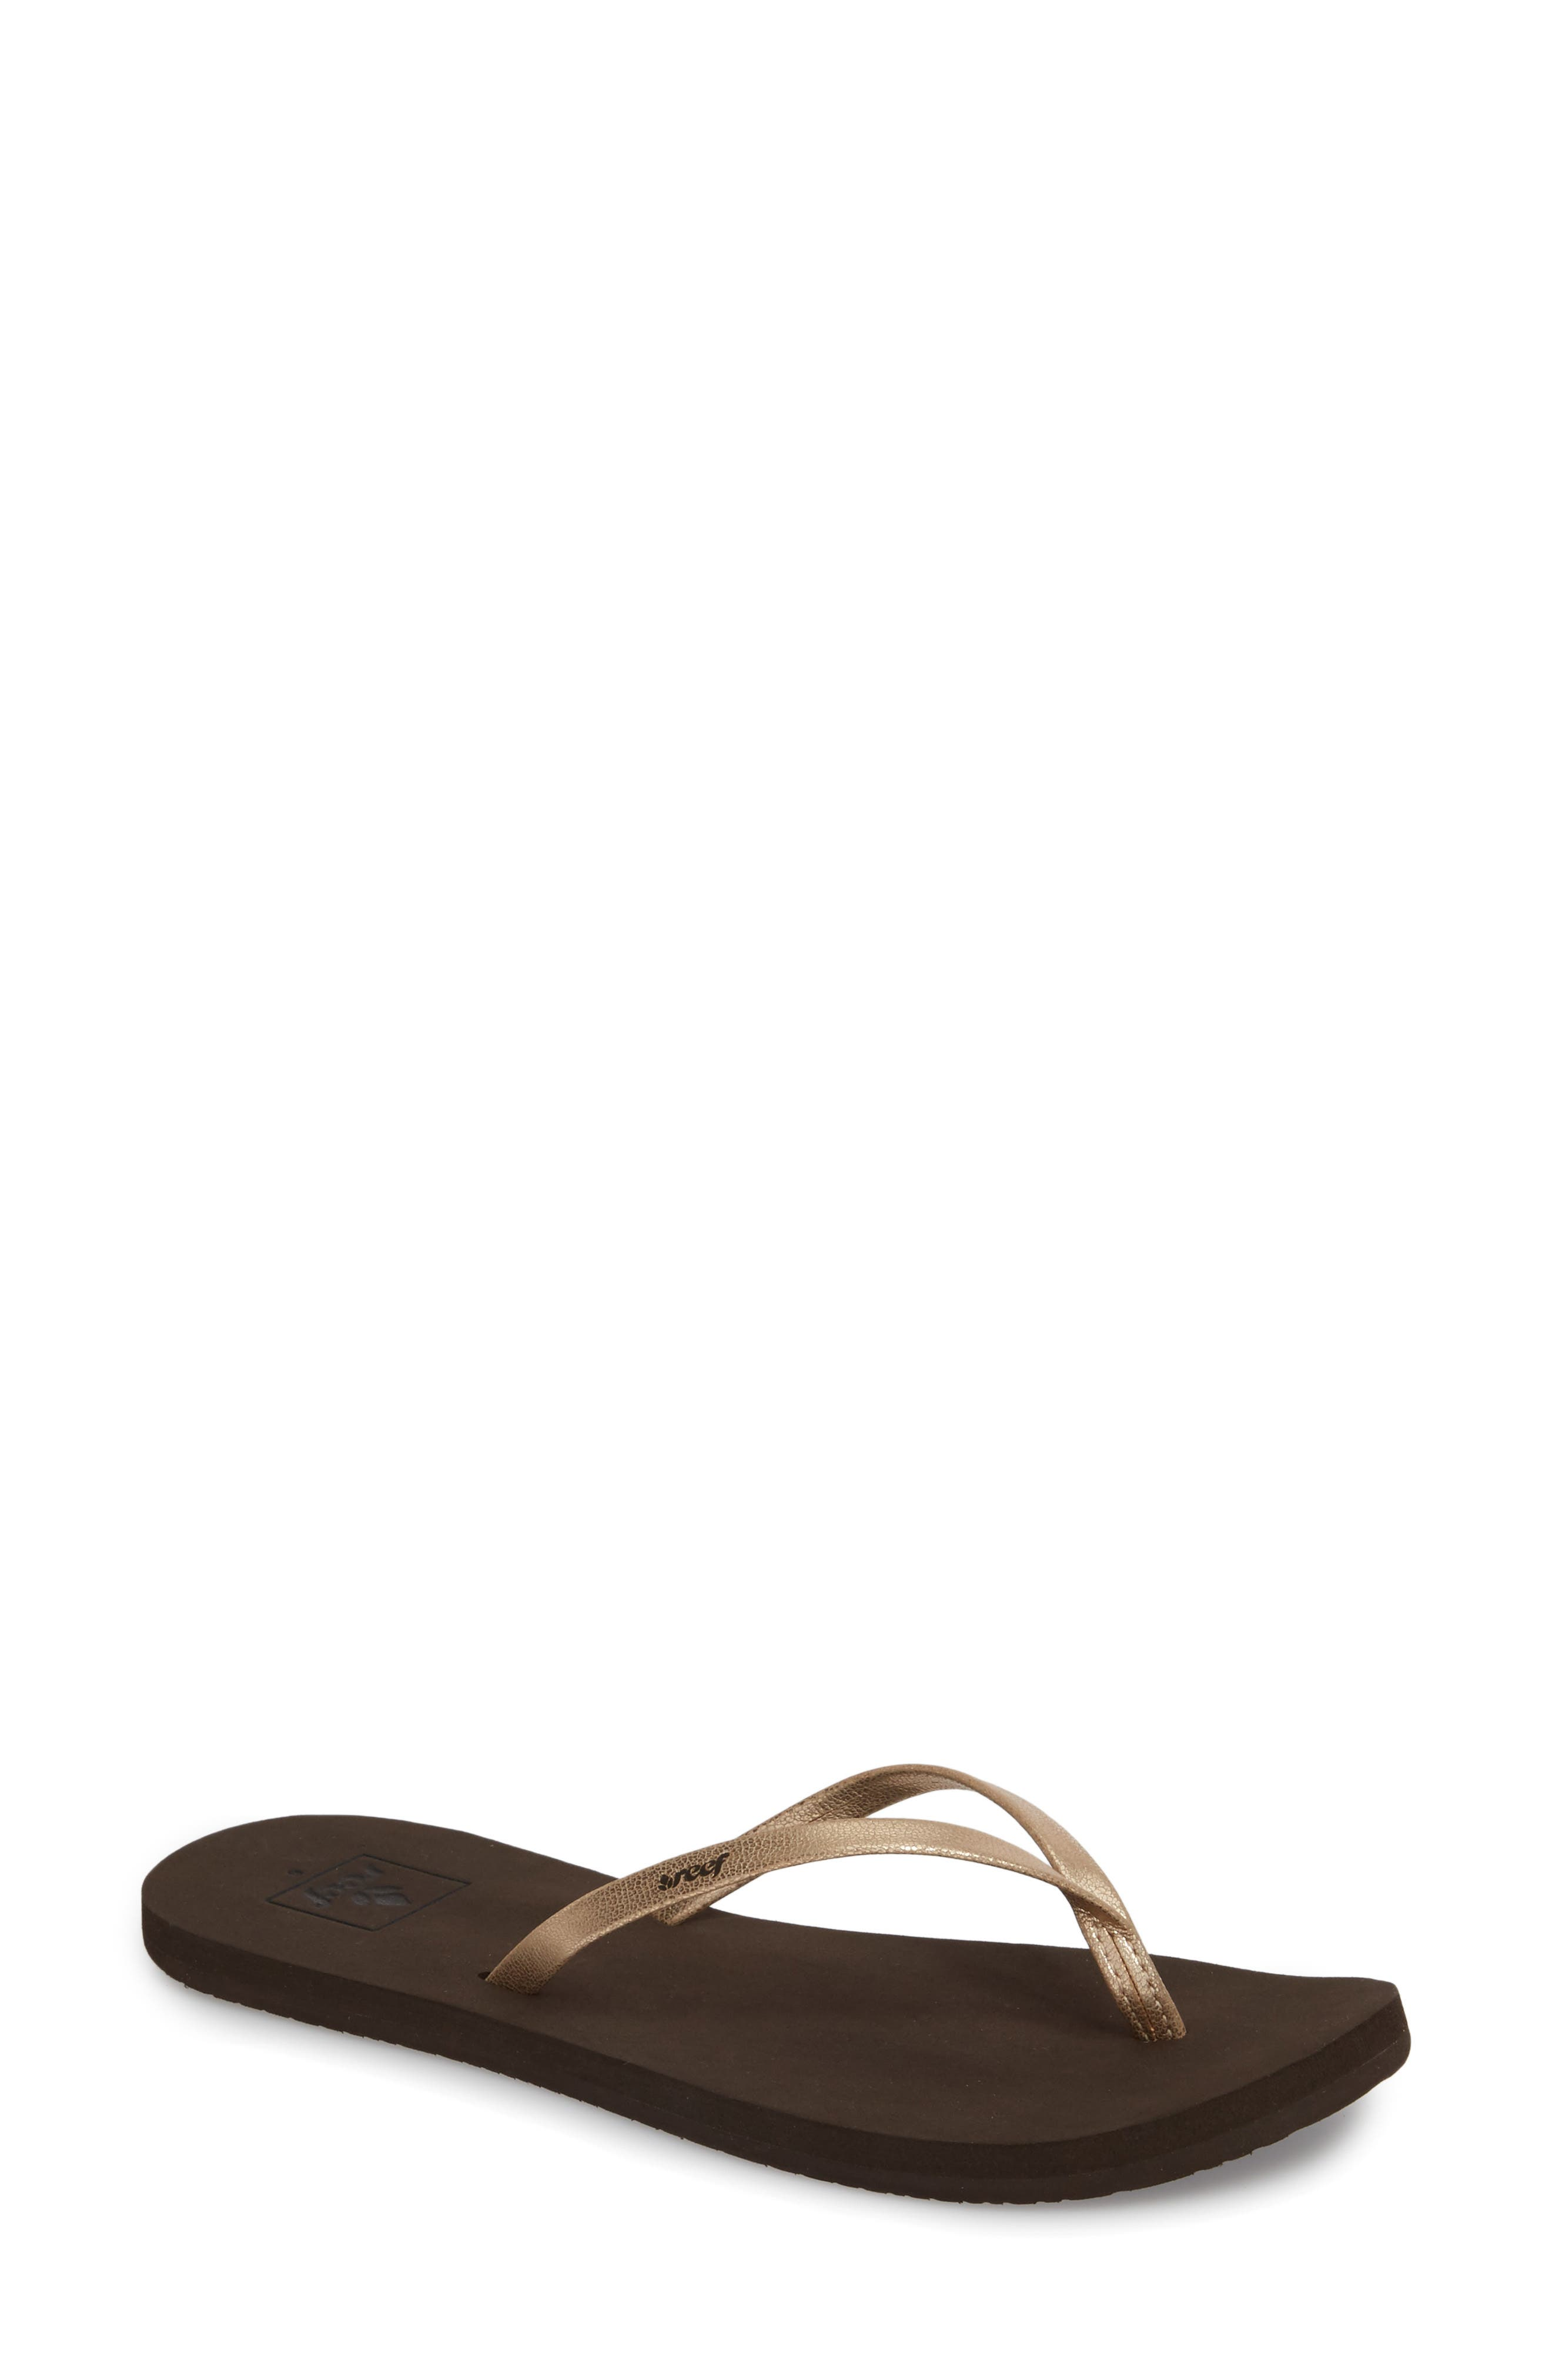 REEF Bliss Nights Flip Flop, Main, color, ROSE GOLD